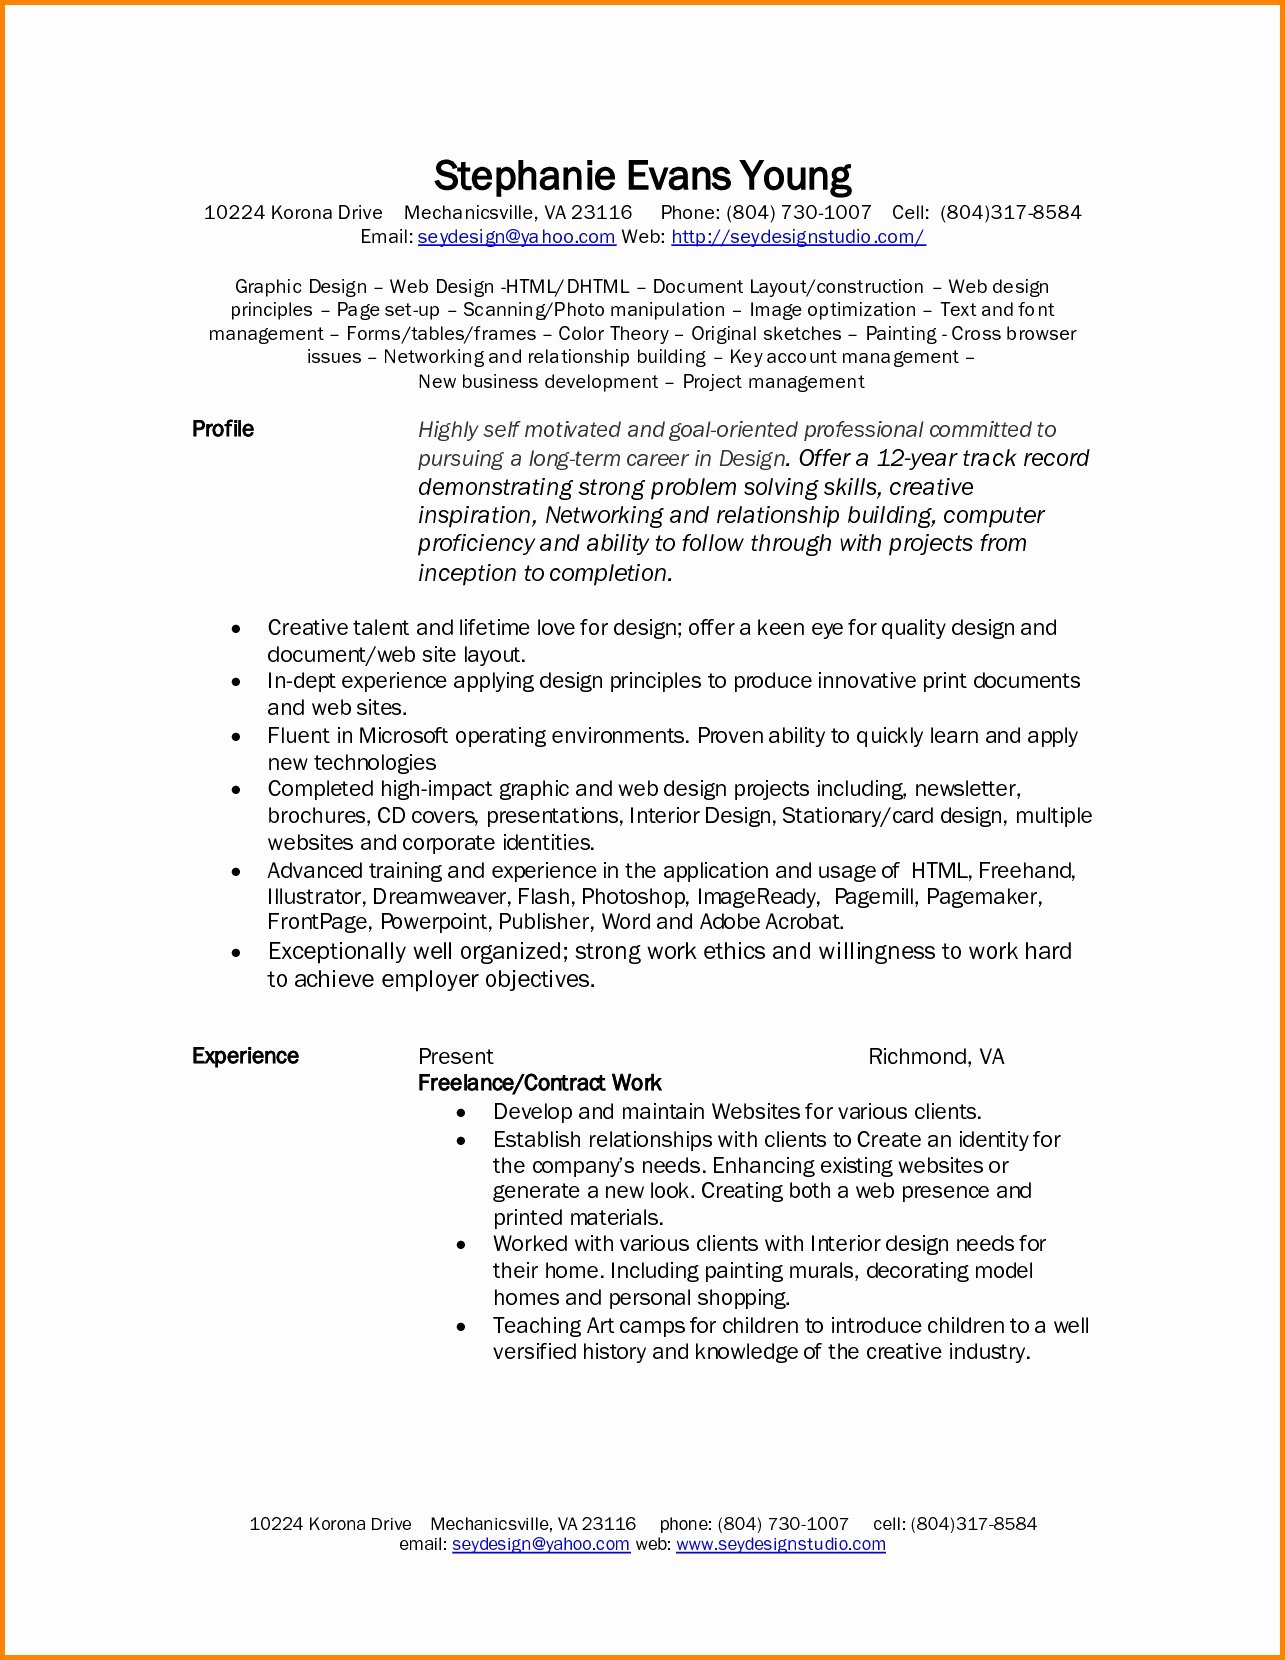 Graphic Design Freelance Contract Template with Freelance